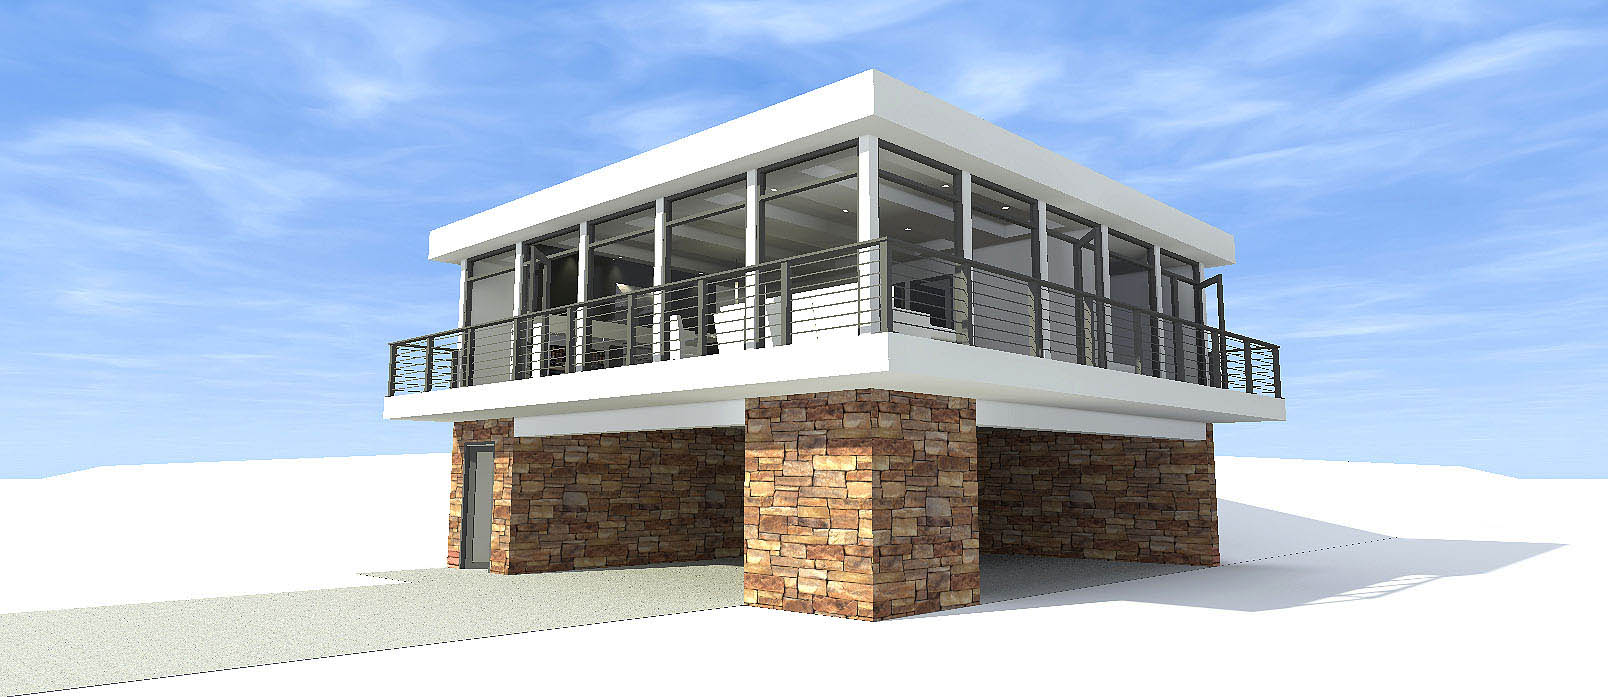 Concrete block icf design modern house plans home for Concrete icf garage plans